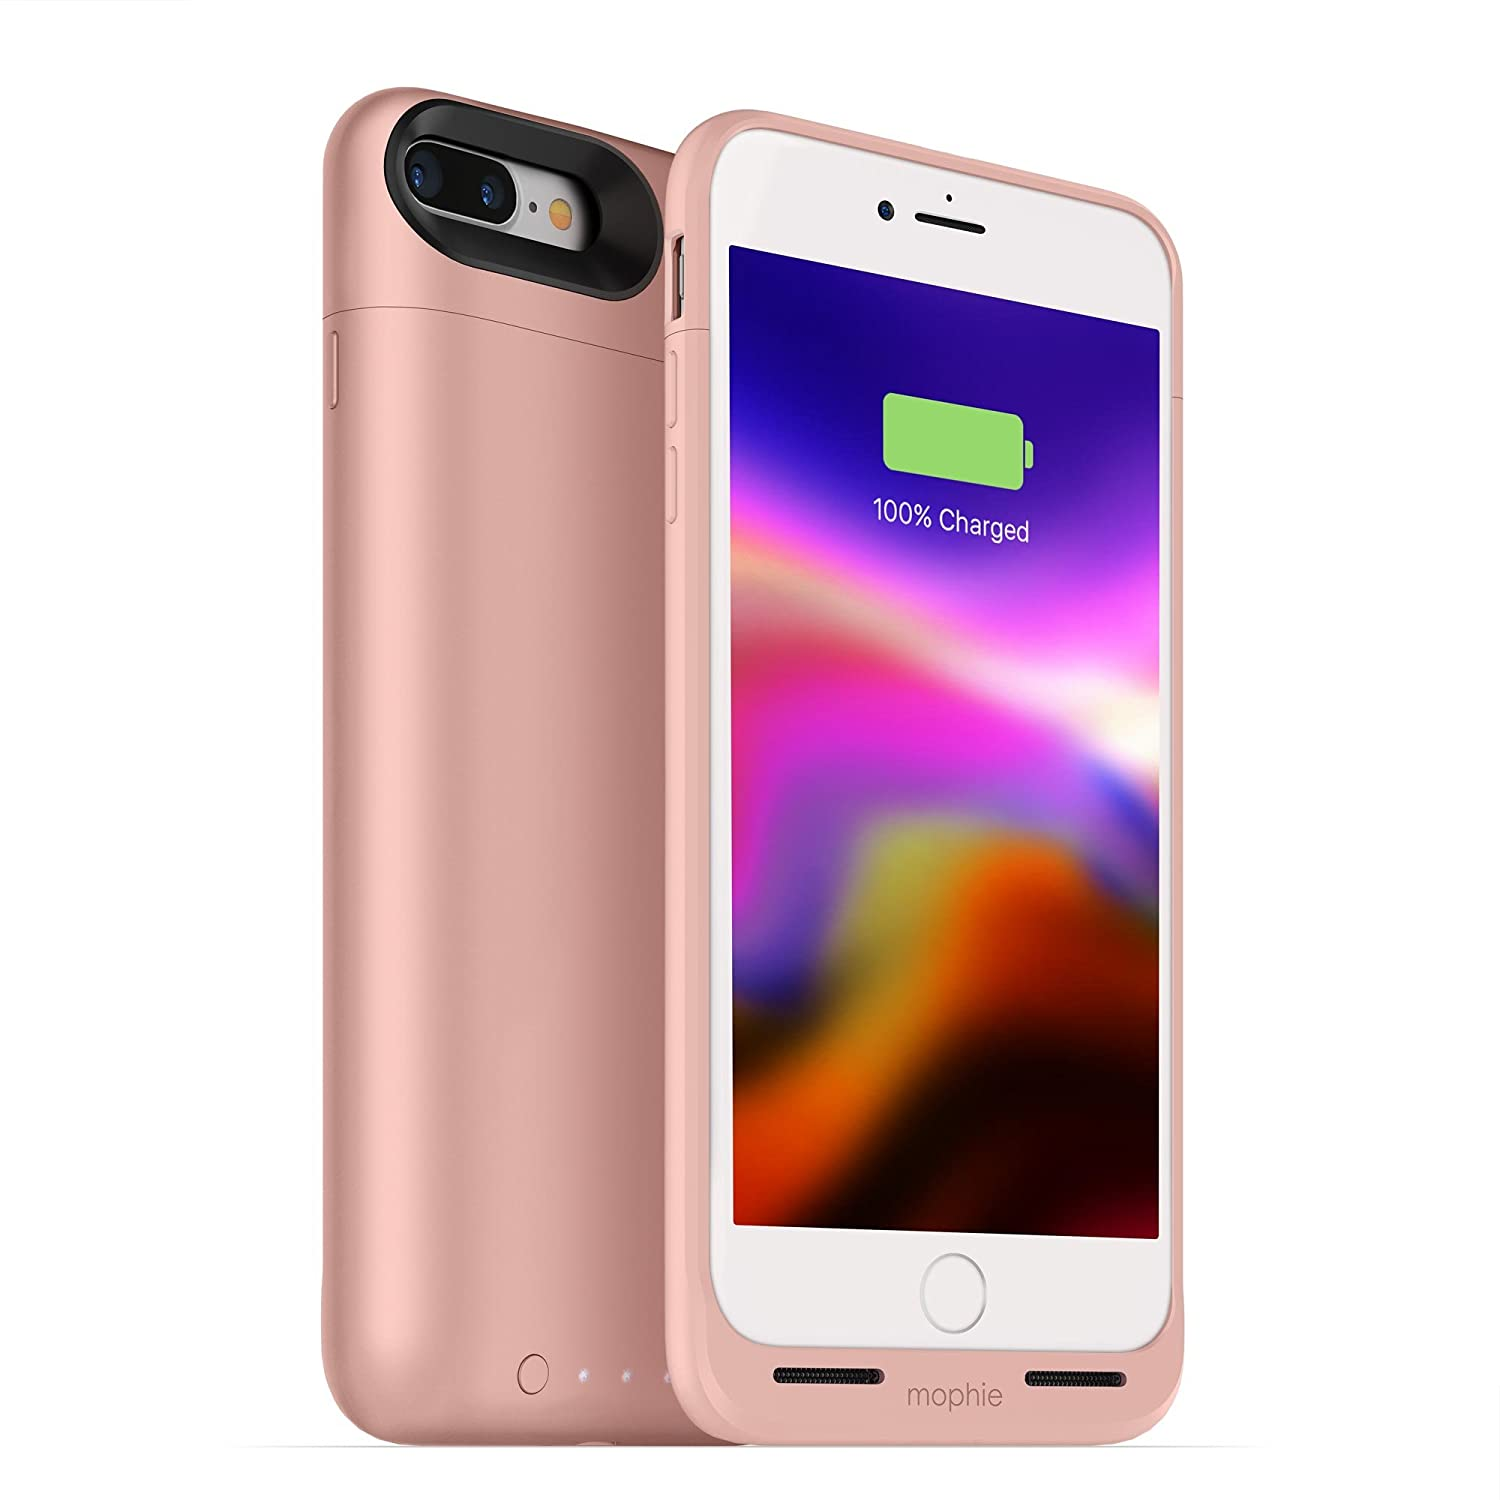 mophie juice pack wireless - Charge Force Wireless Power - Wireless Charging Protective Battery Pack Case for iPhone 8 Plus – Rose Gold